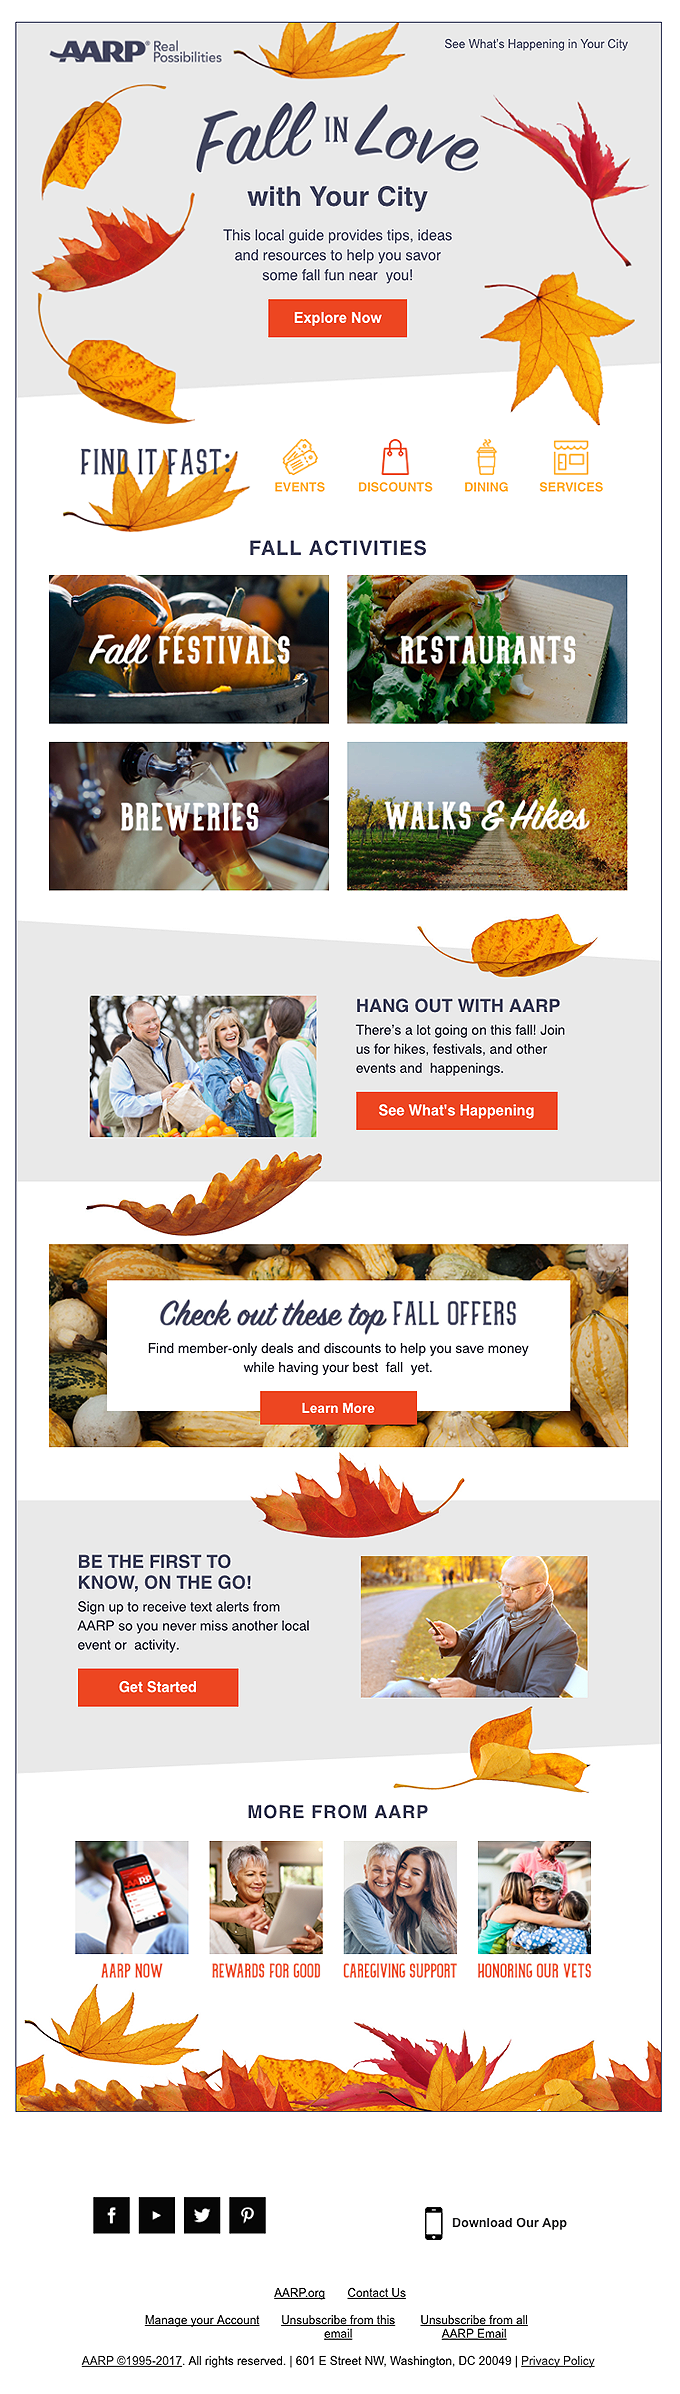 Smiles Davis, Your Fall Guide to Your City is Here!